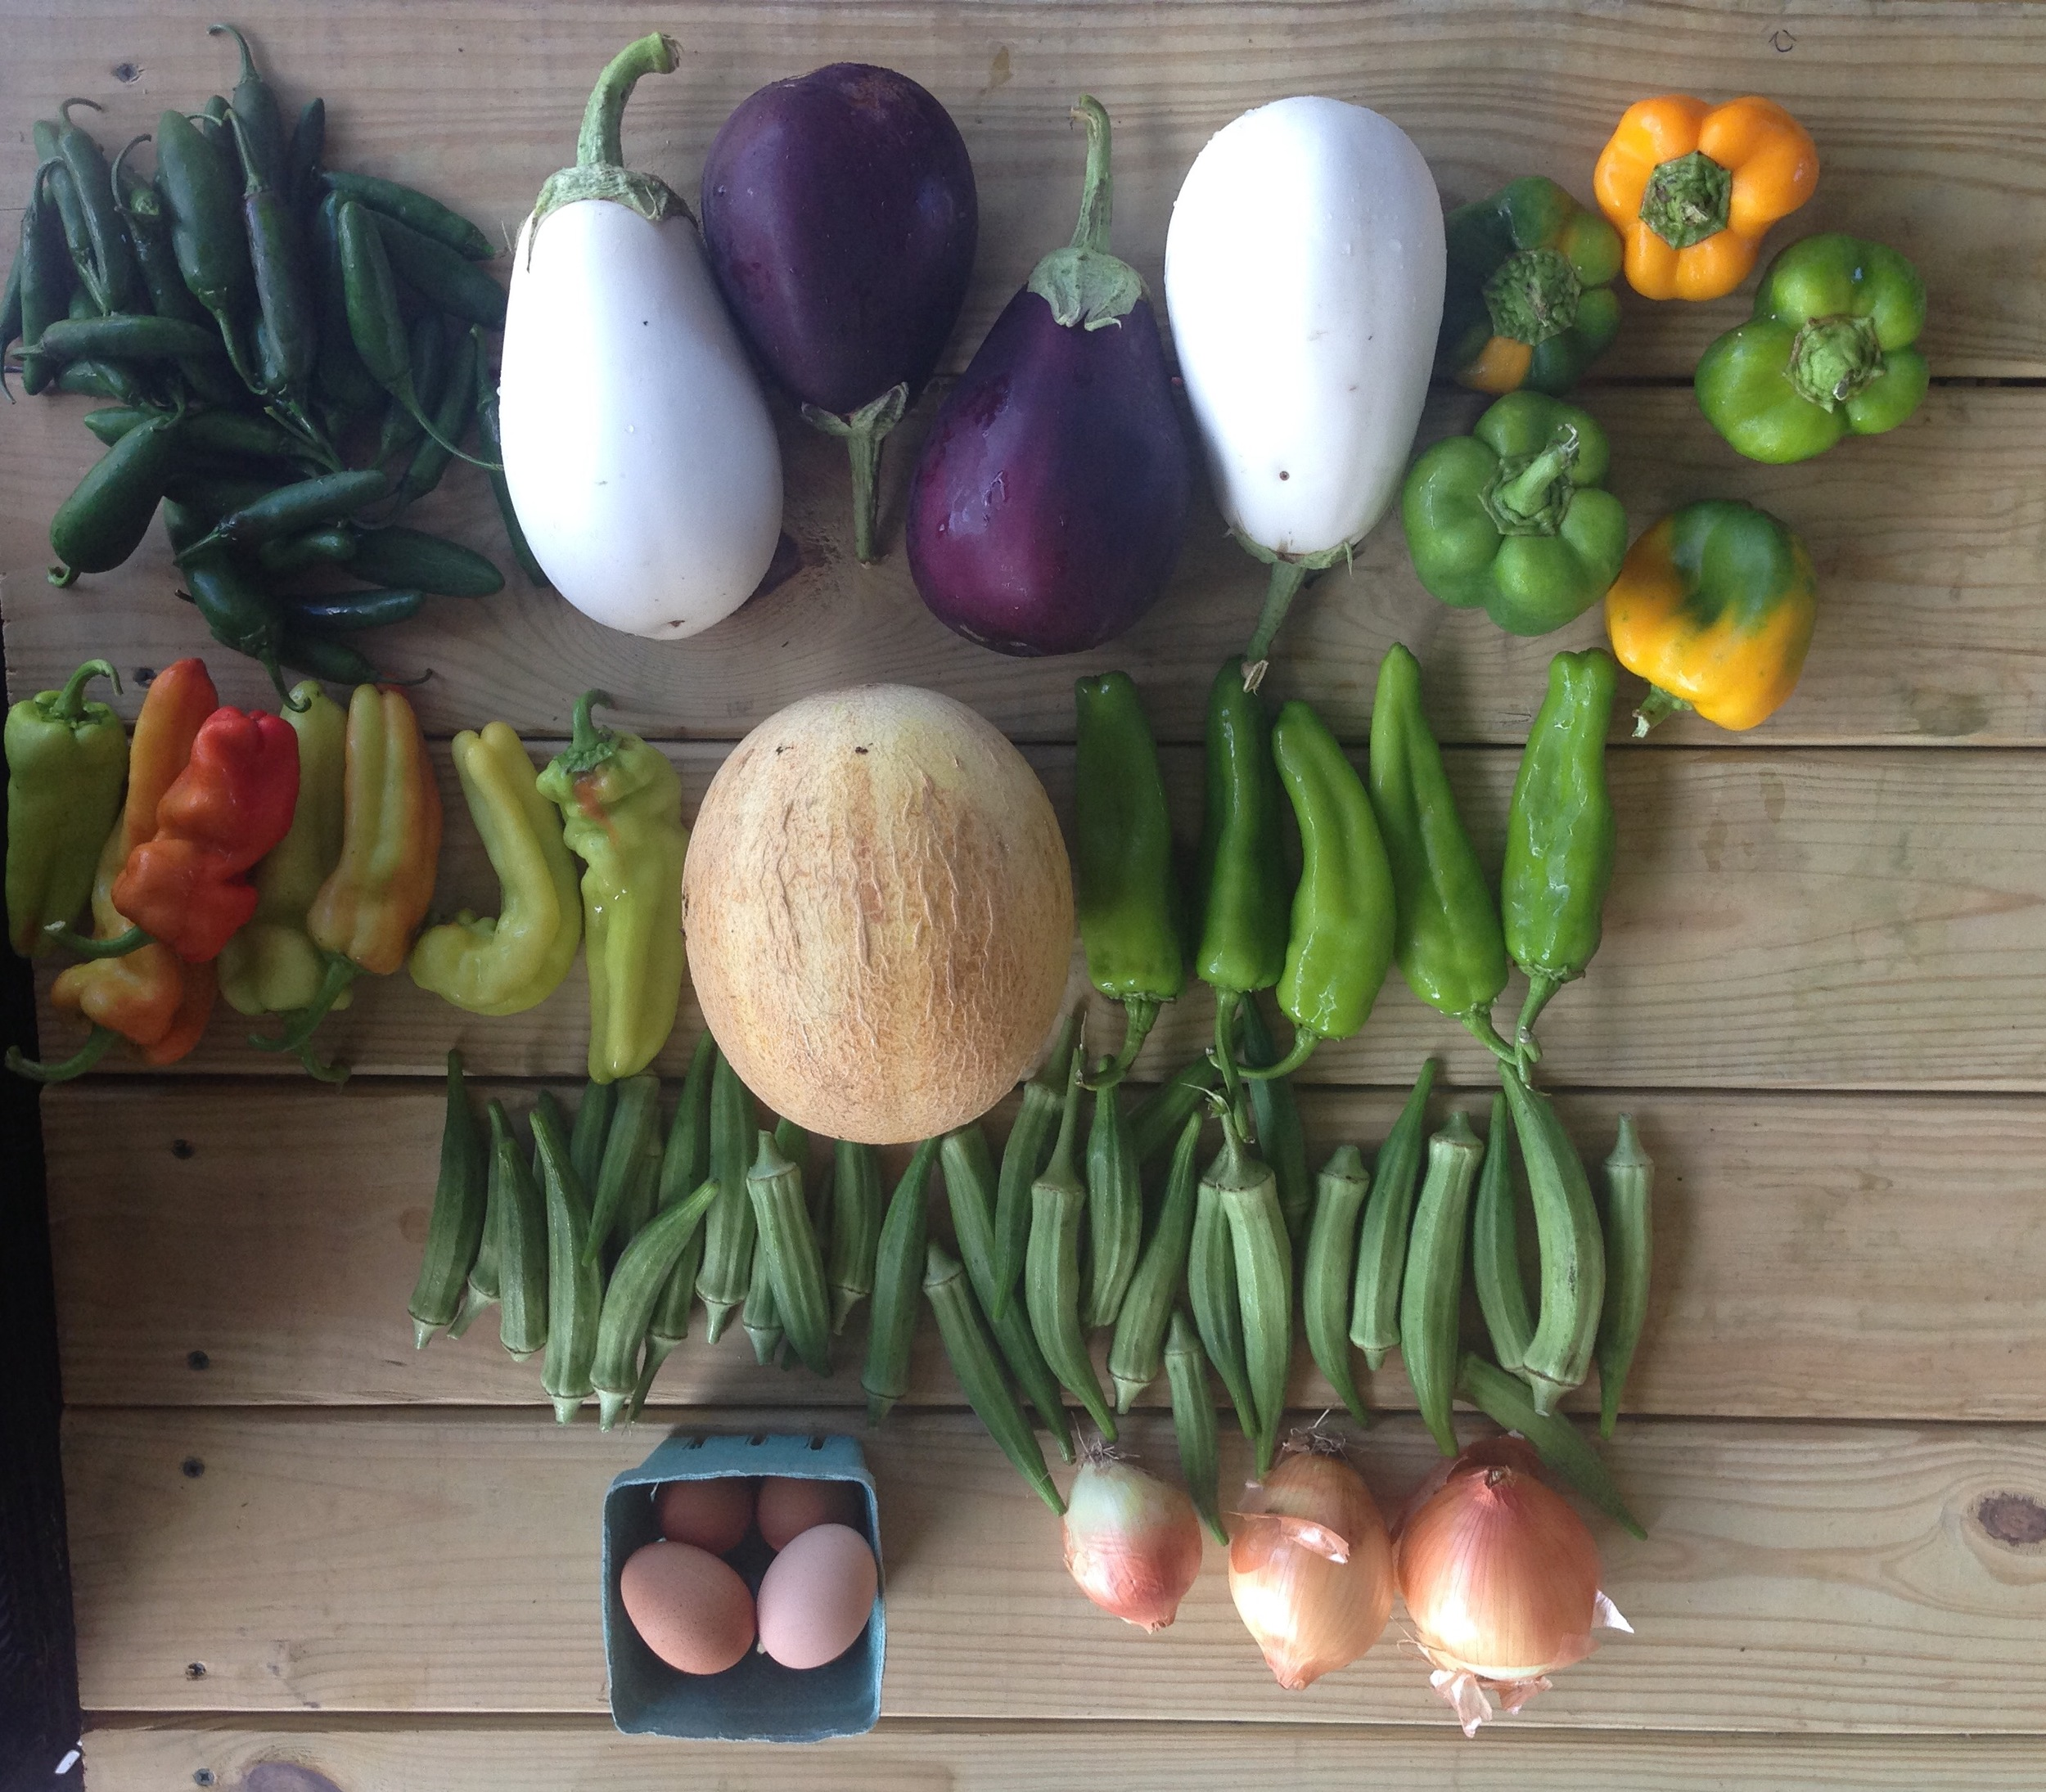 top left to right: hot pepper mix, eggplant, bell peppers  middle left to right: cubanelle peppers, cantaloupe, anaheim peppers  bottom: okra, eggs, onions